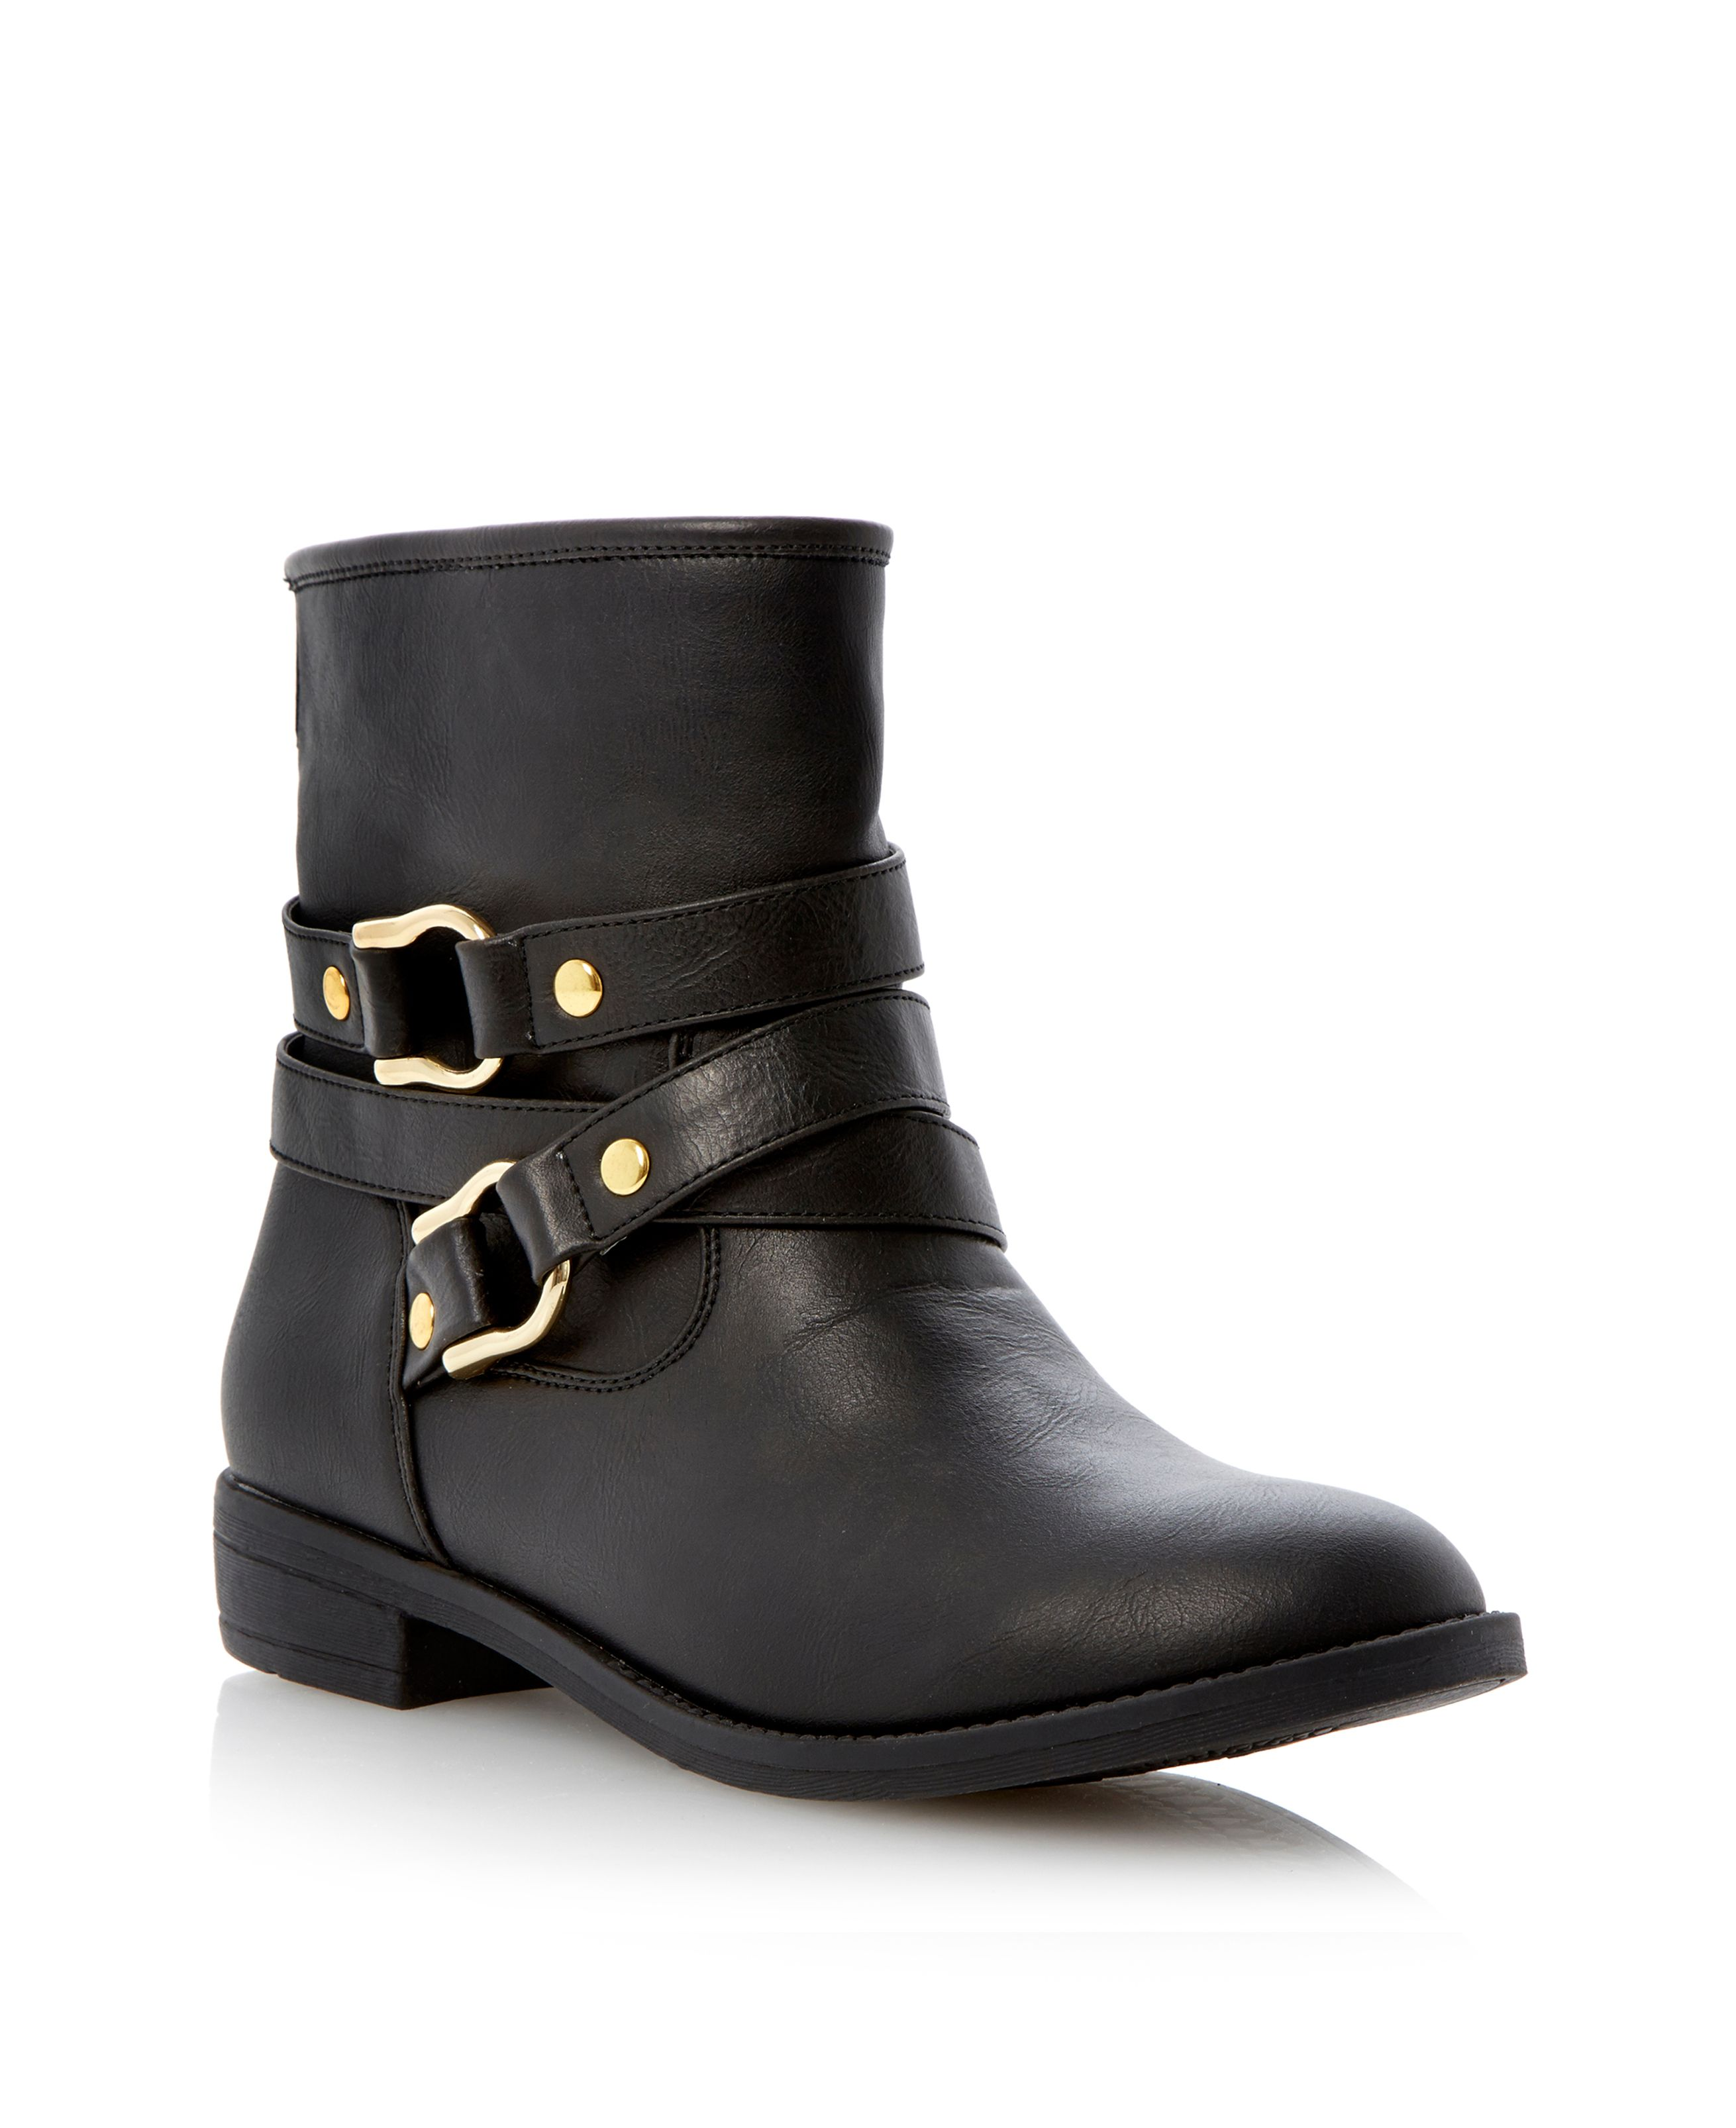 Parkaa wrap around strap detail ankle boots